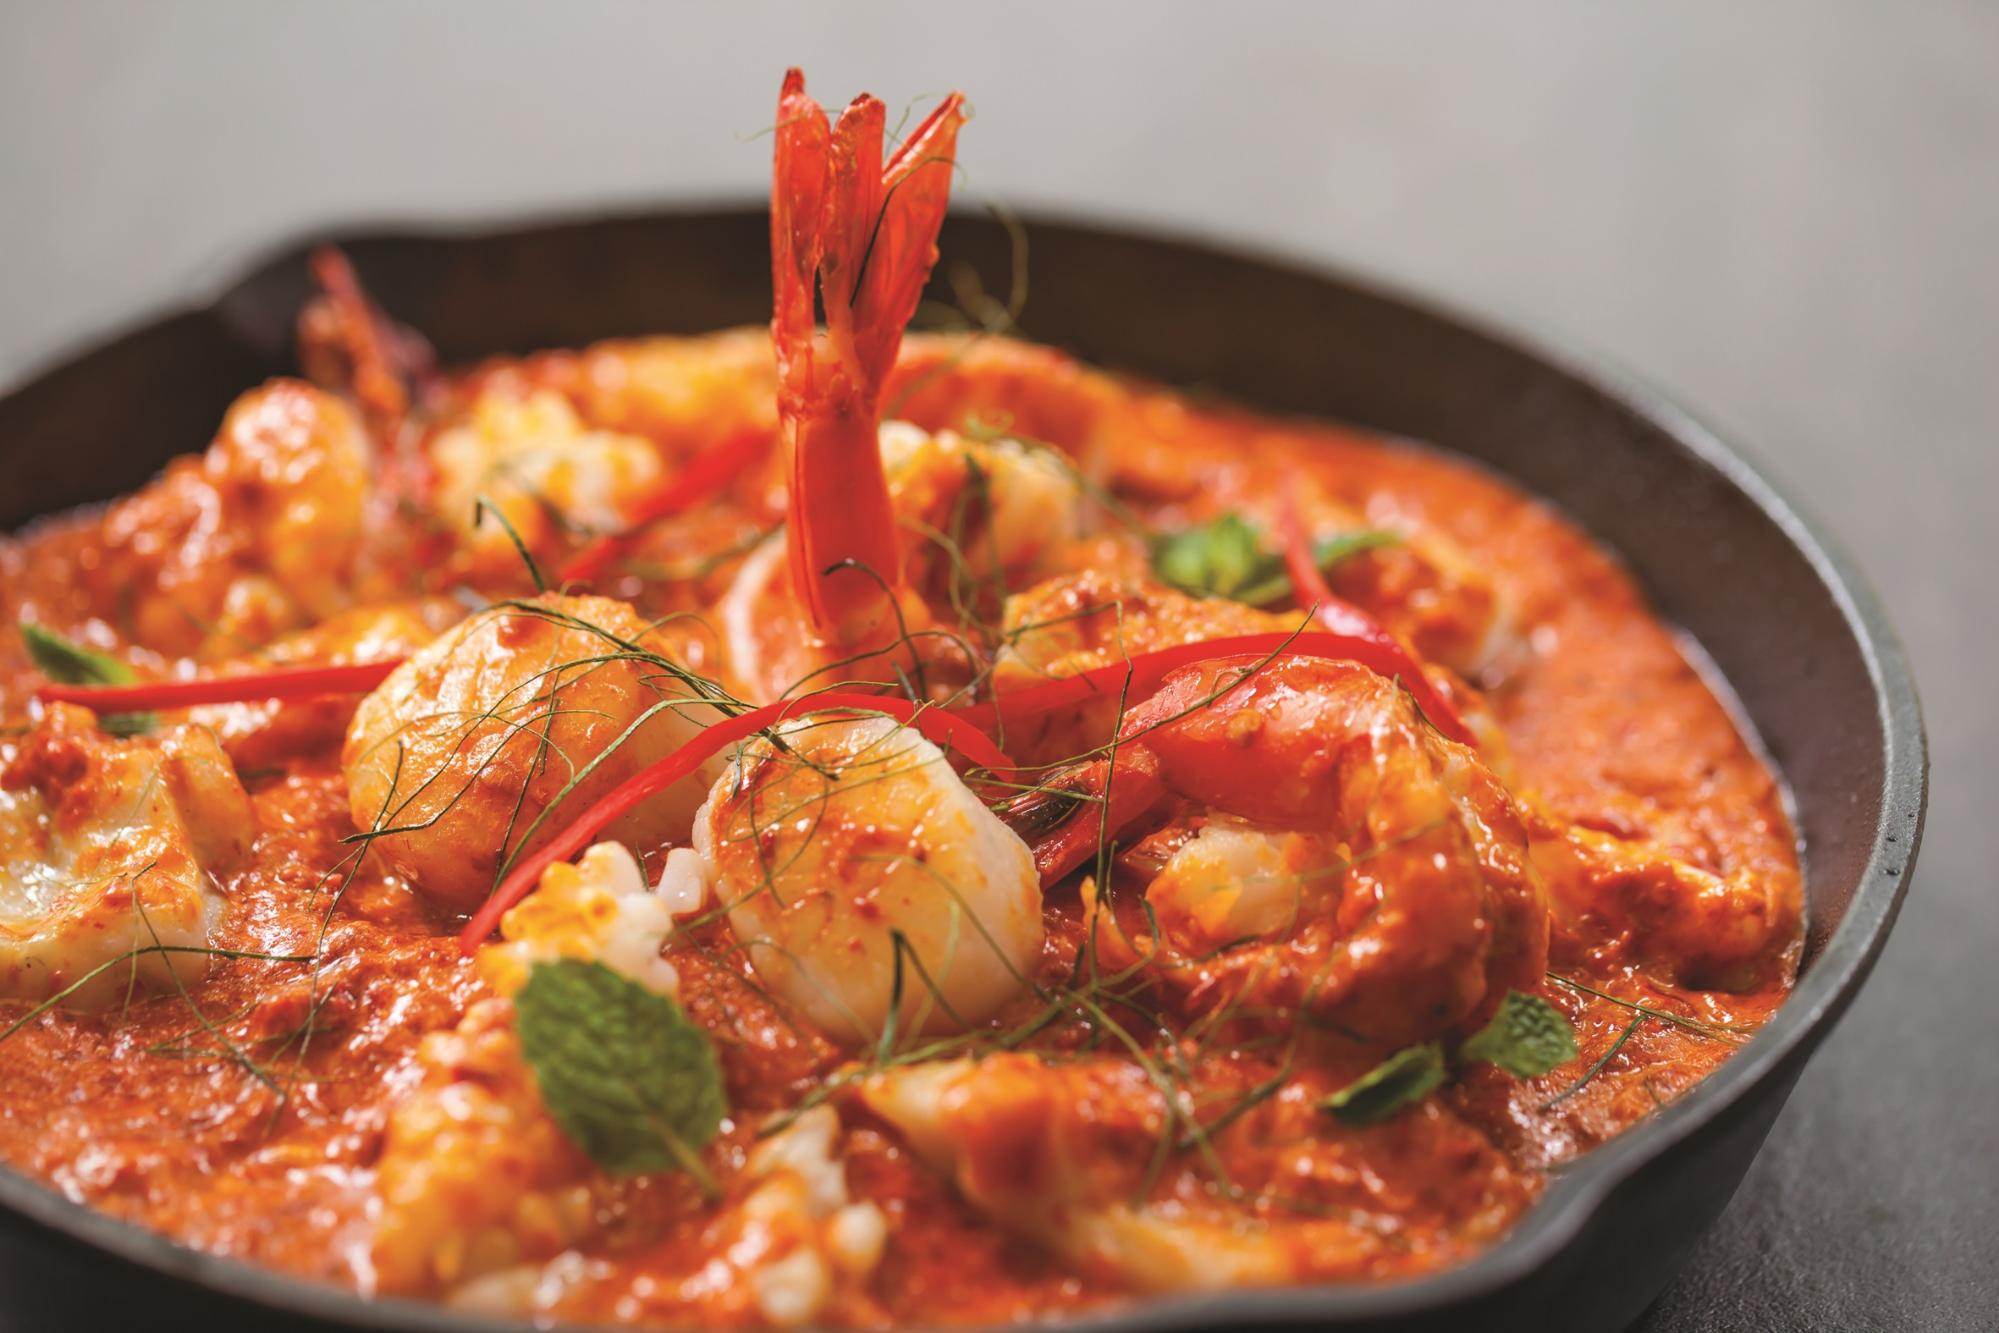 ChopeDeals birthday sale - Red House Seafood Spicy Seafood Combination dish